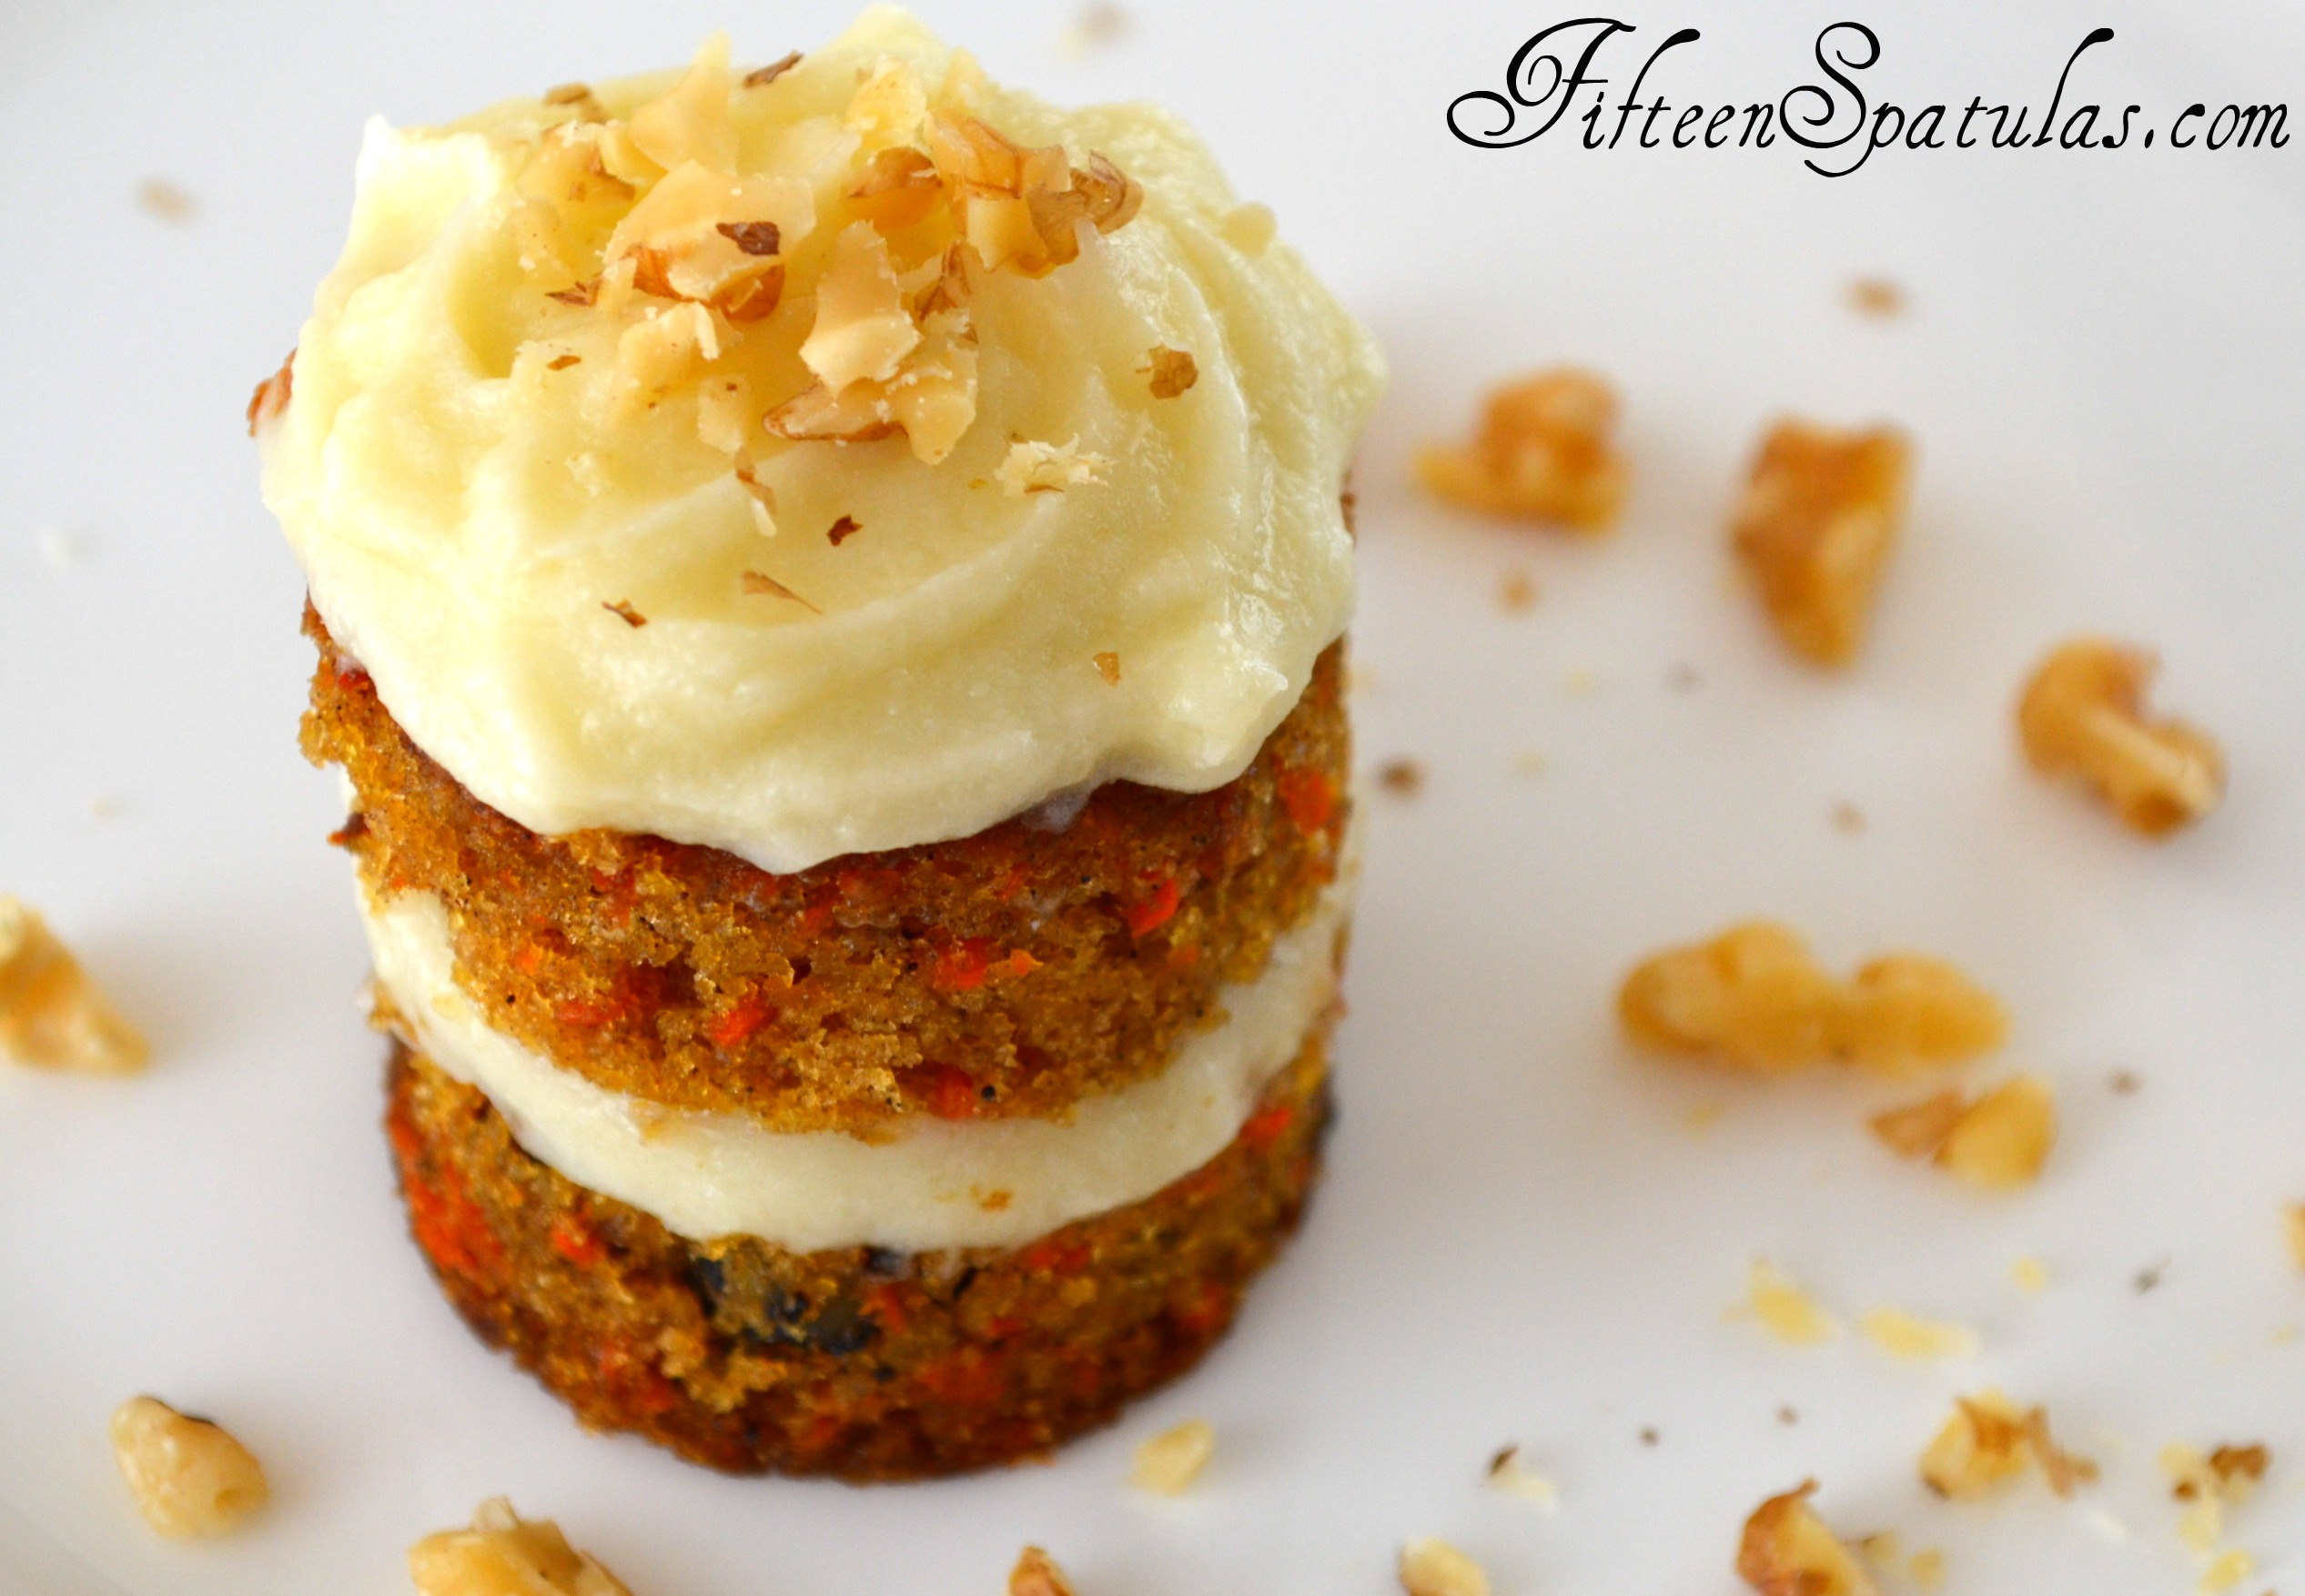 Petite Carrot Cakes with Whipped Mascarpone Frosting |